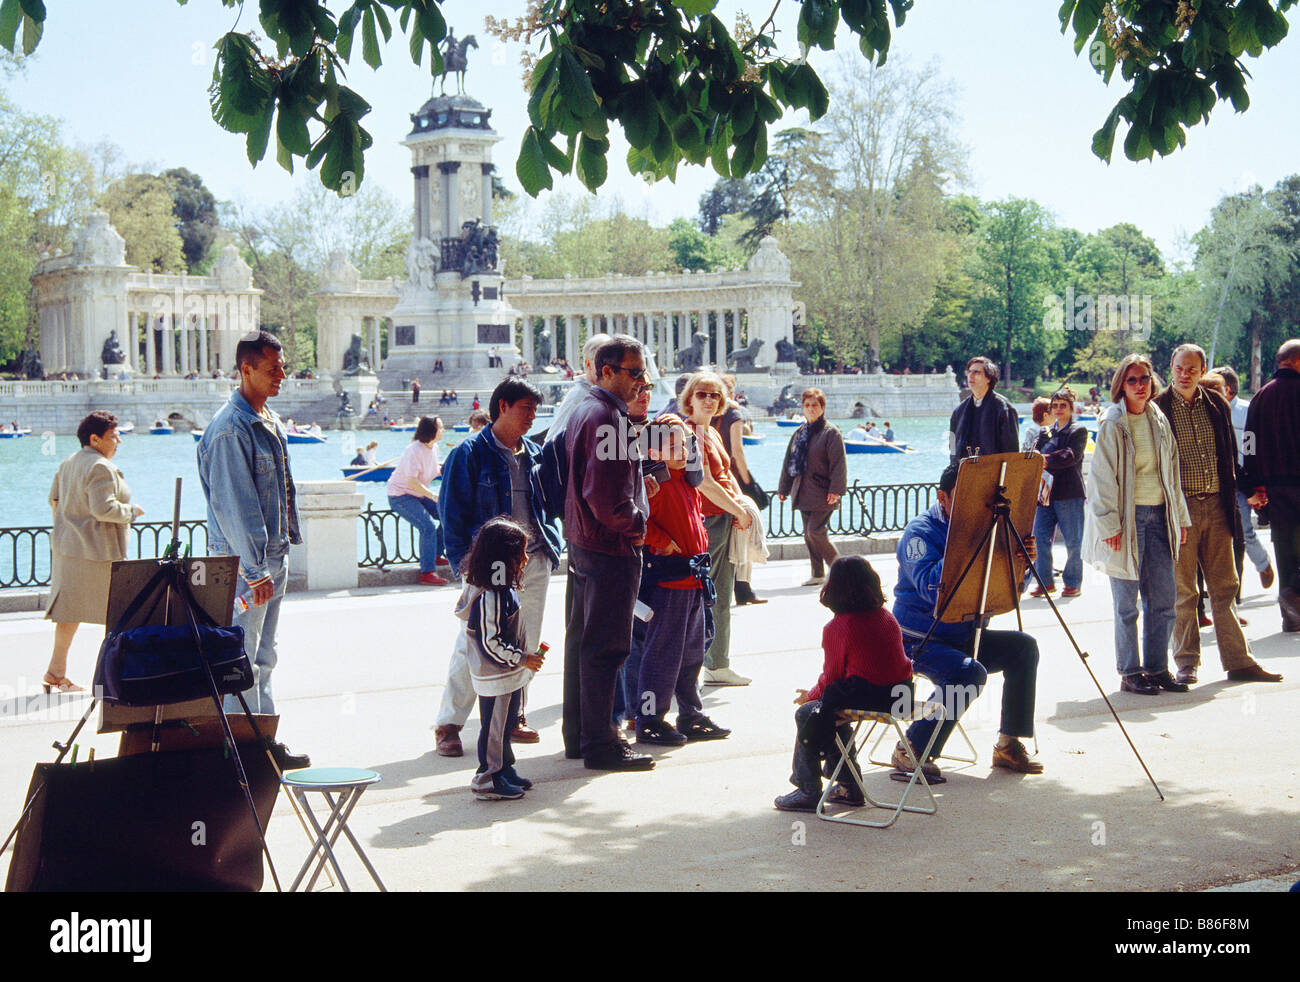 Group of people looking at drawer working. The Retiro park. Madrid. Spain. - Stock Image